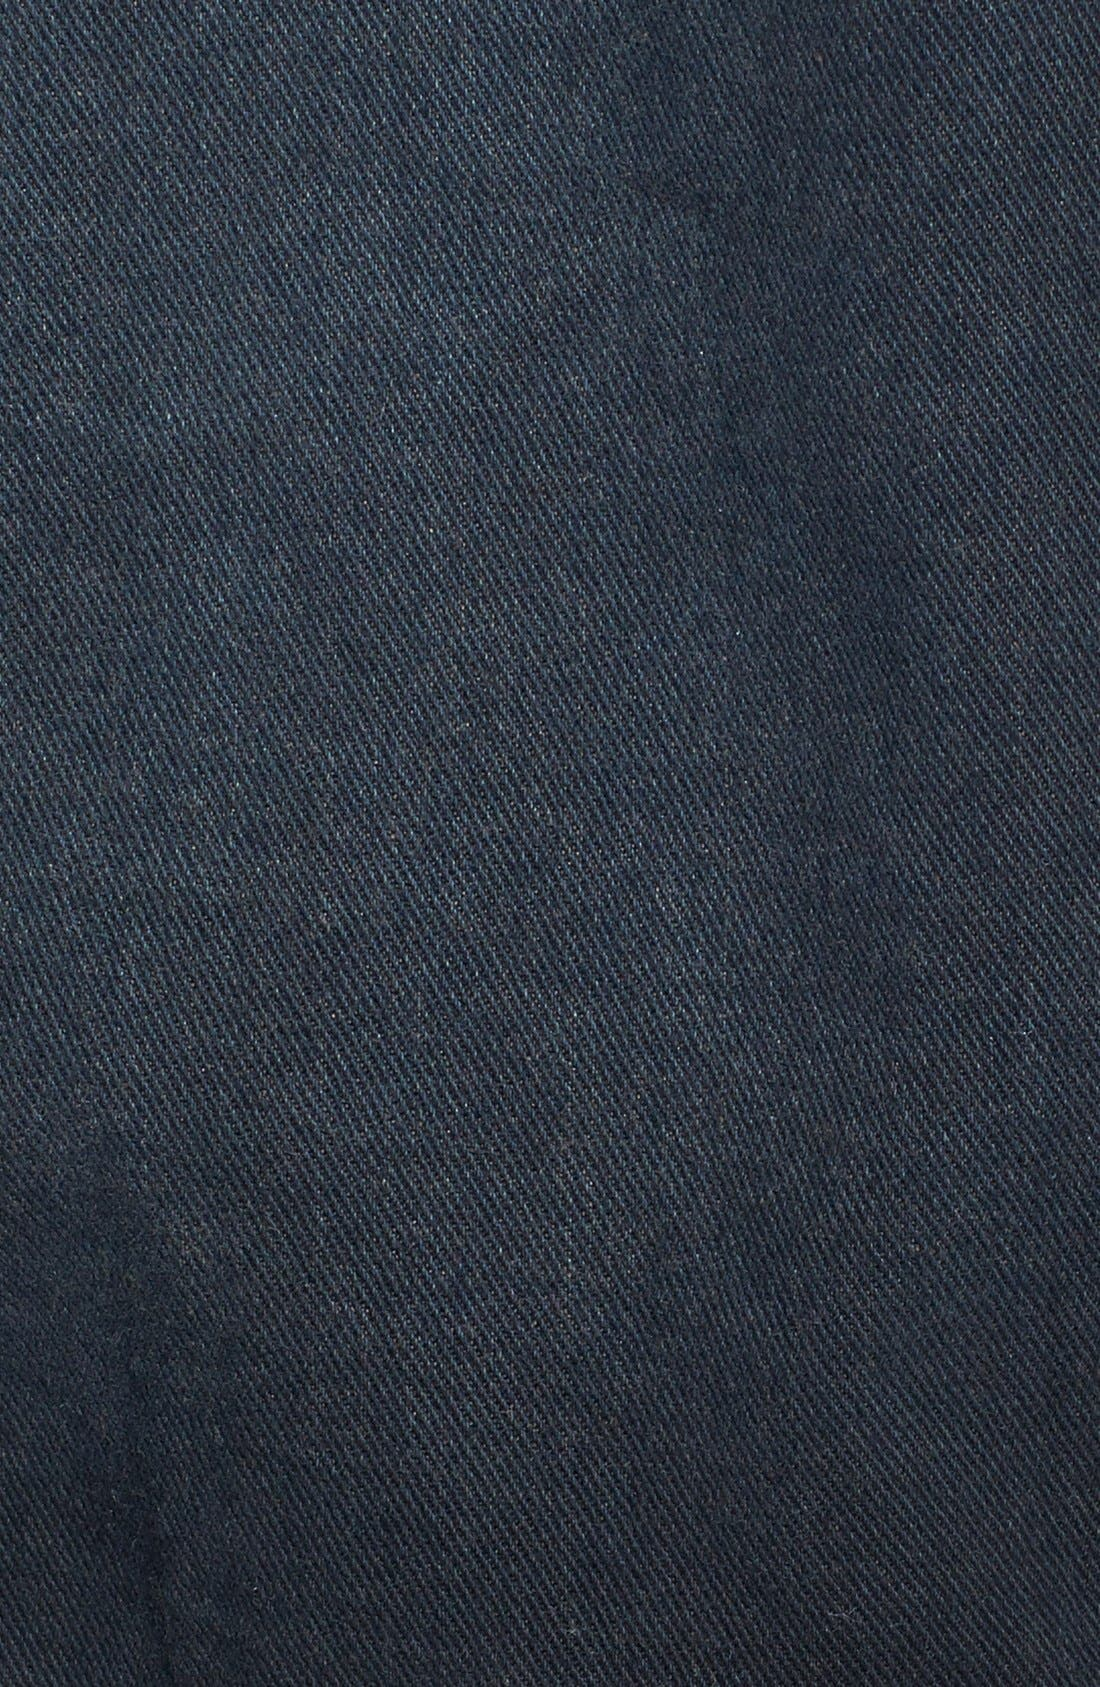 Denim & Knit Jacket,                             Alternate thumbnail 3, color,                             001